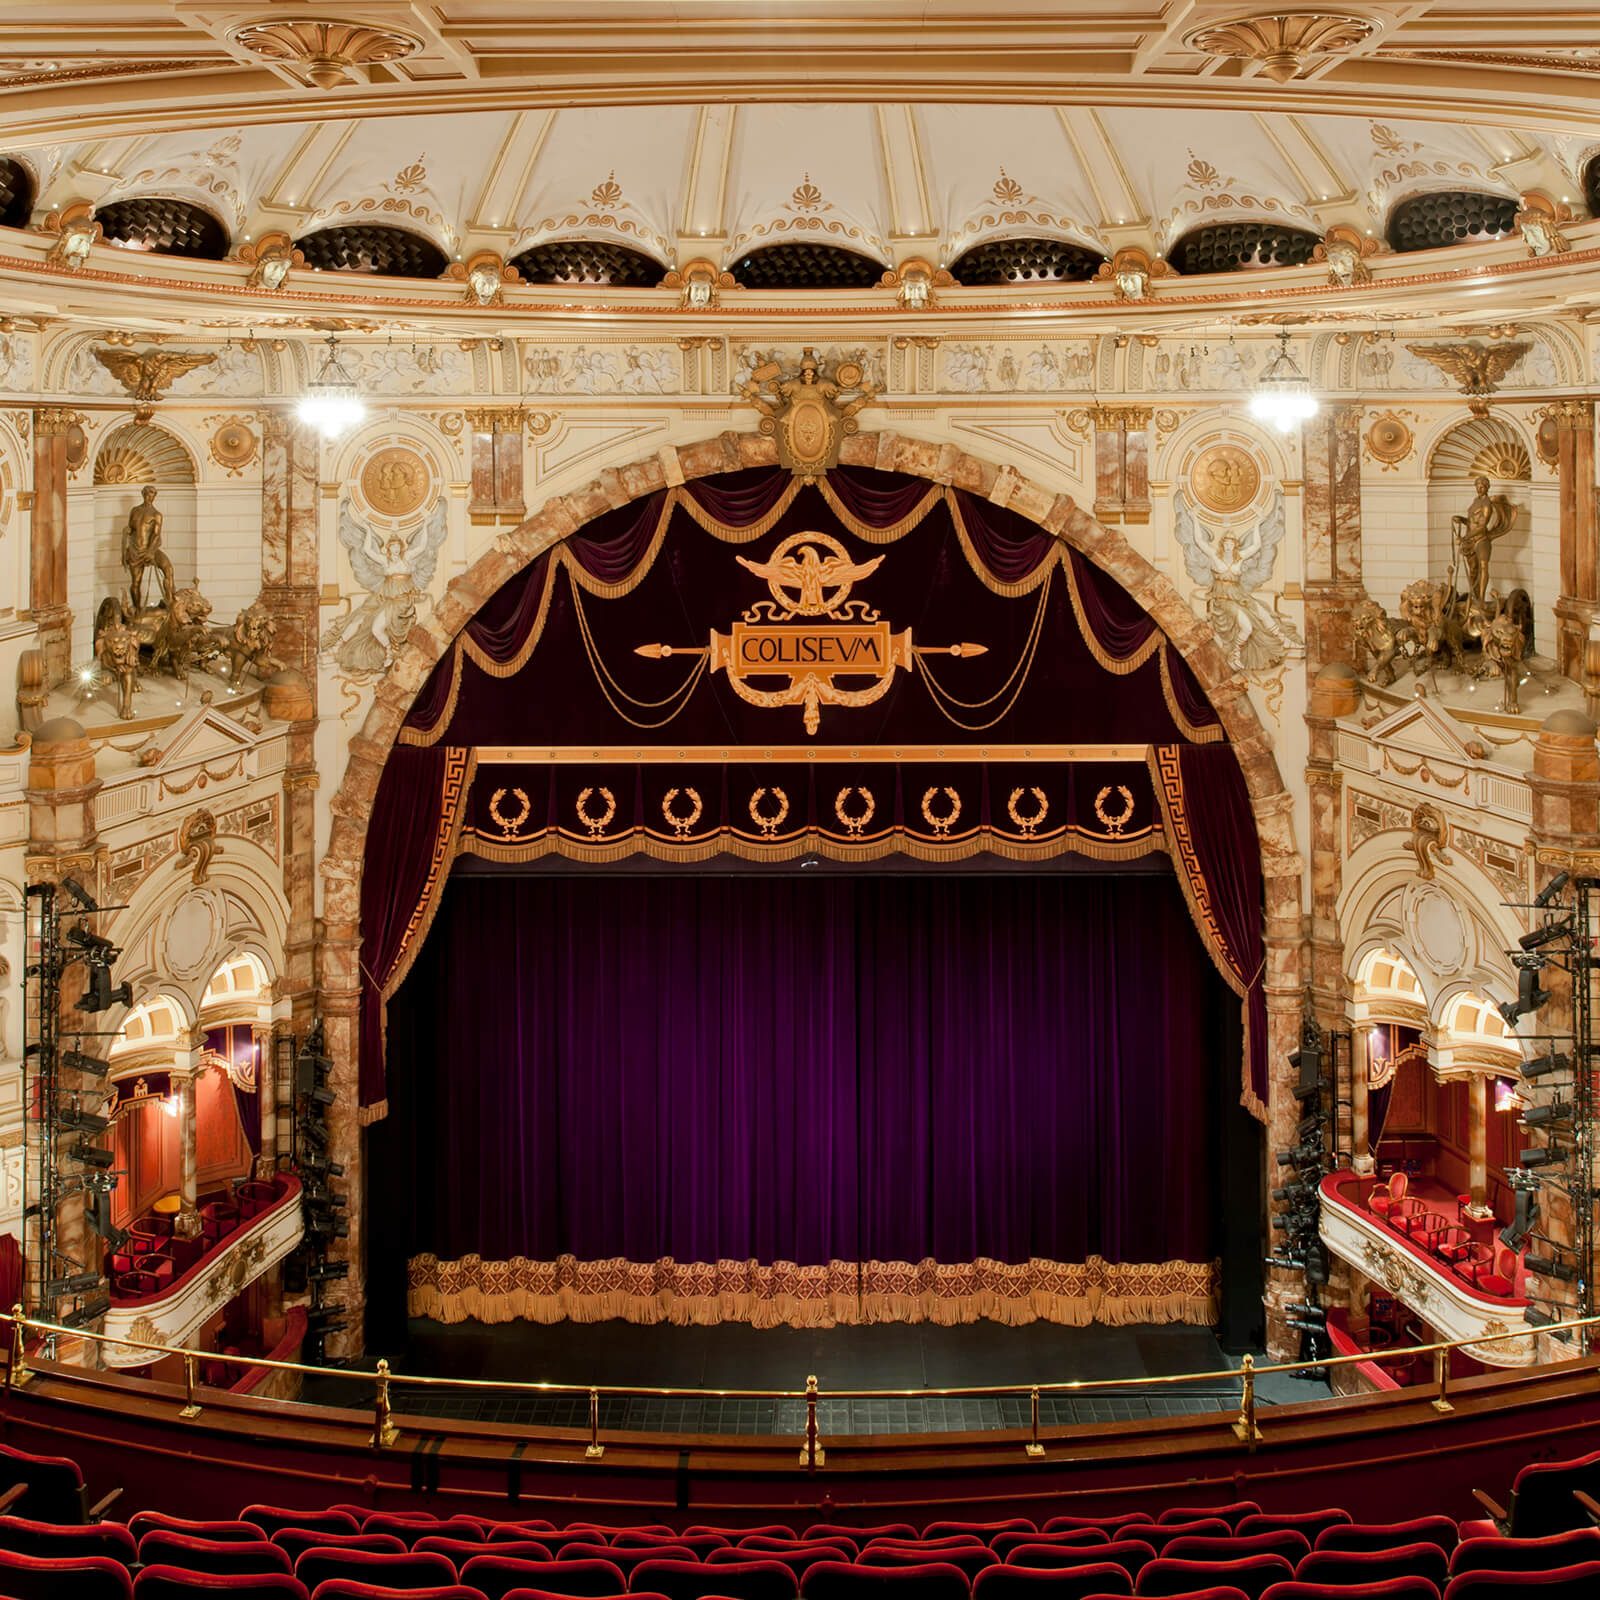 London Coliseum Tour and Cream Tea for Two, London